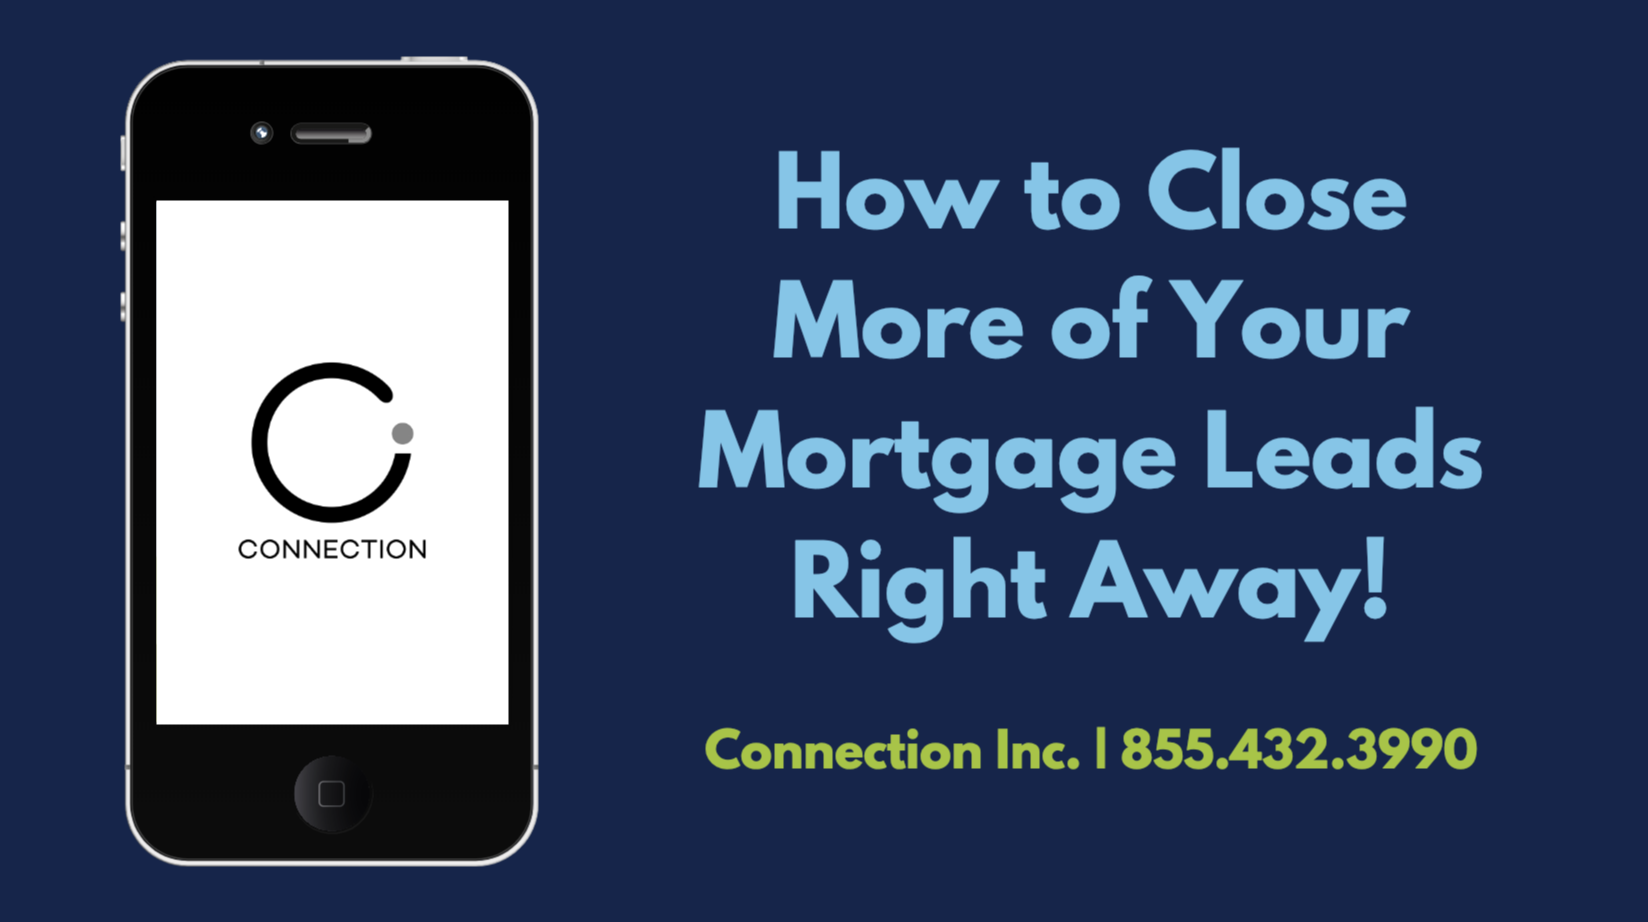 How to Close More of Your Mortgage Leads Right Away!